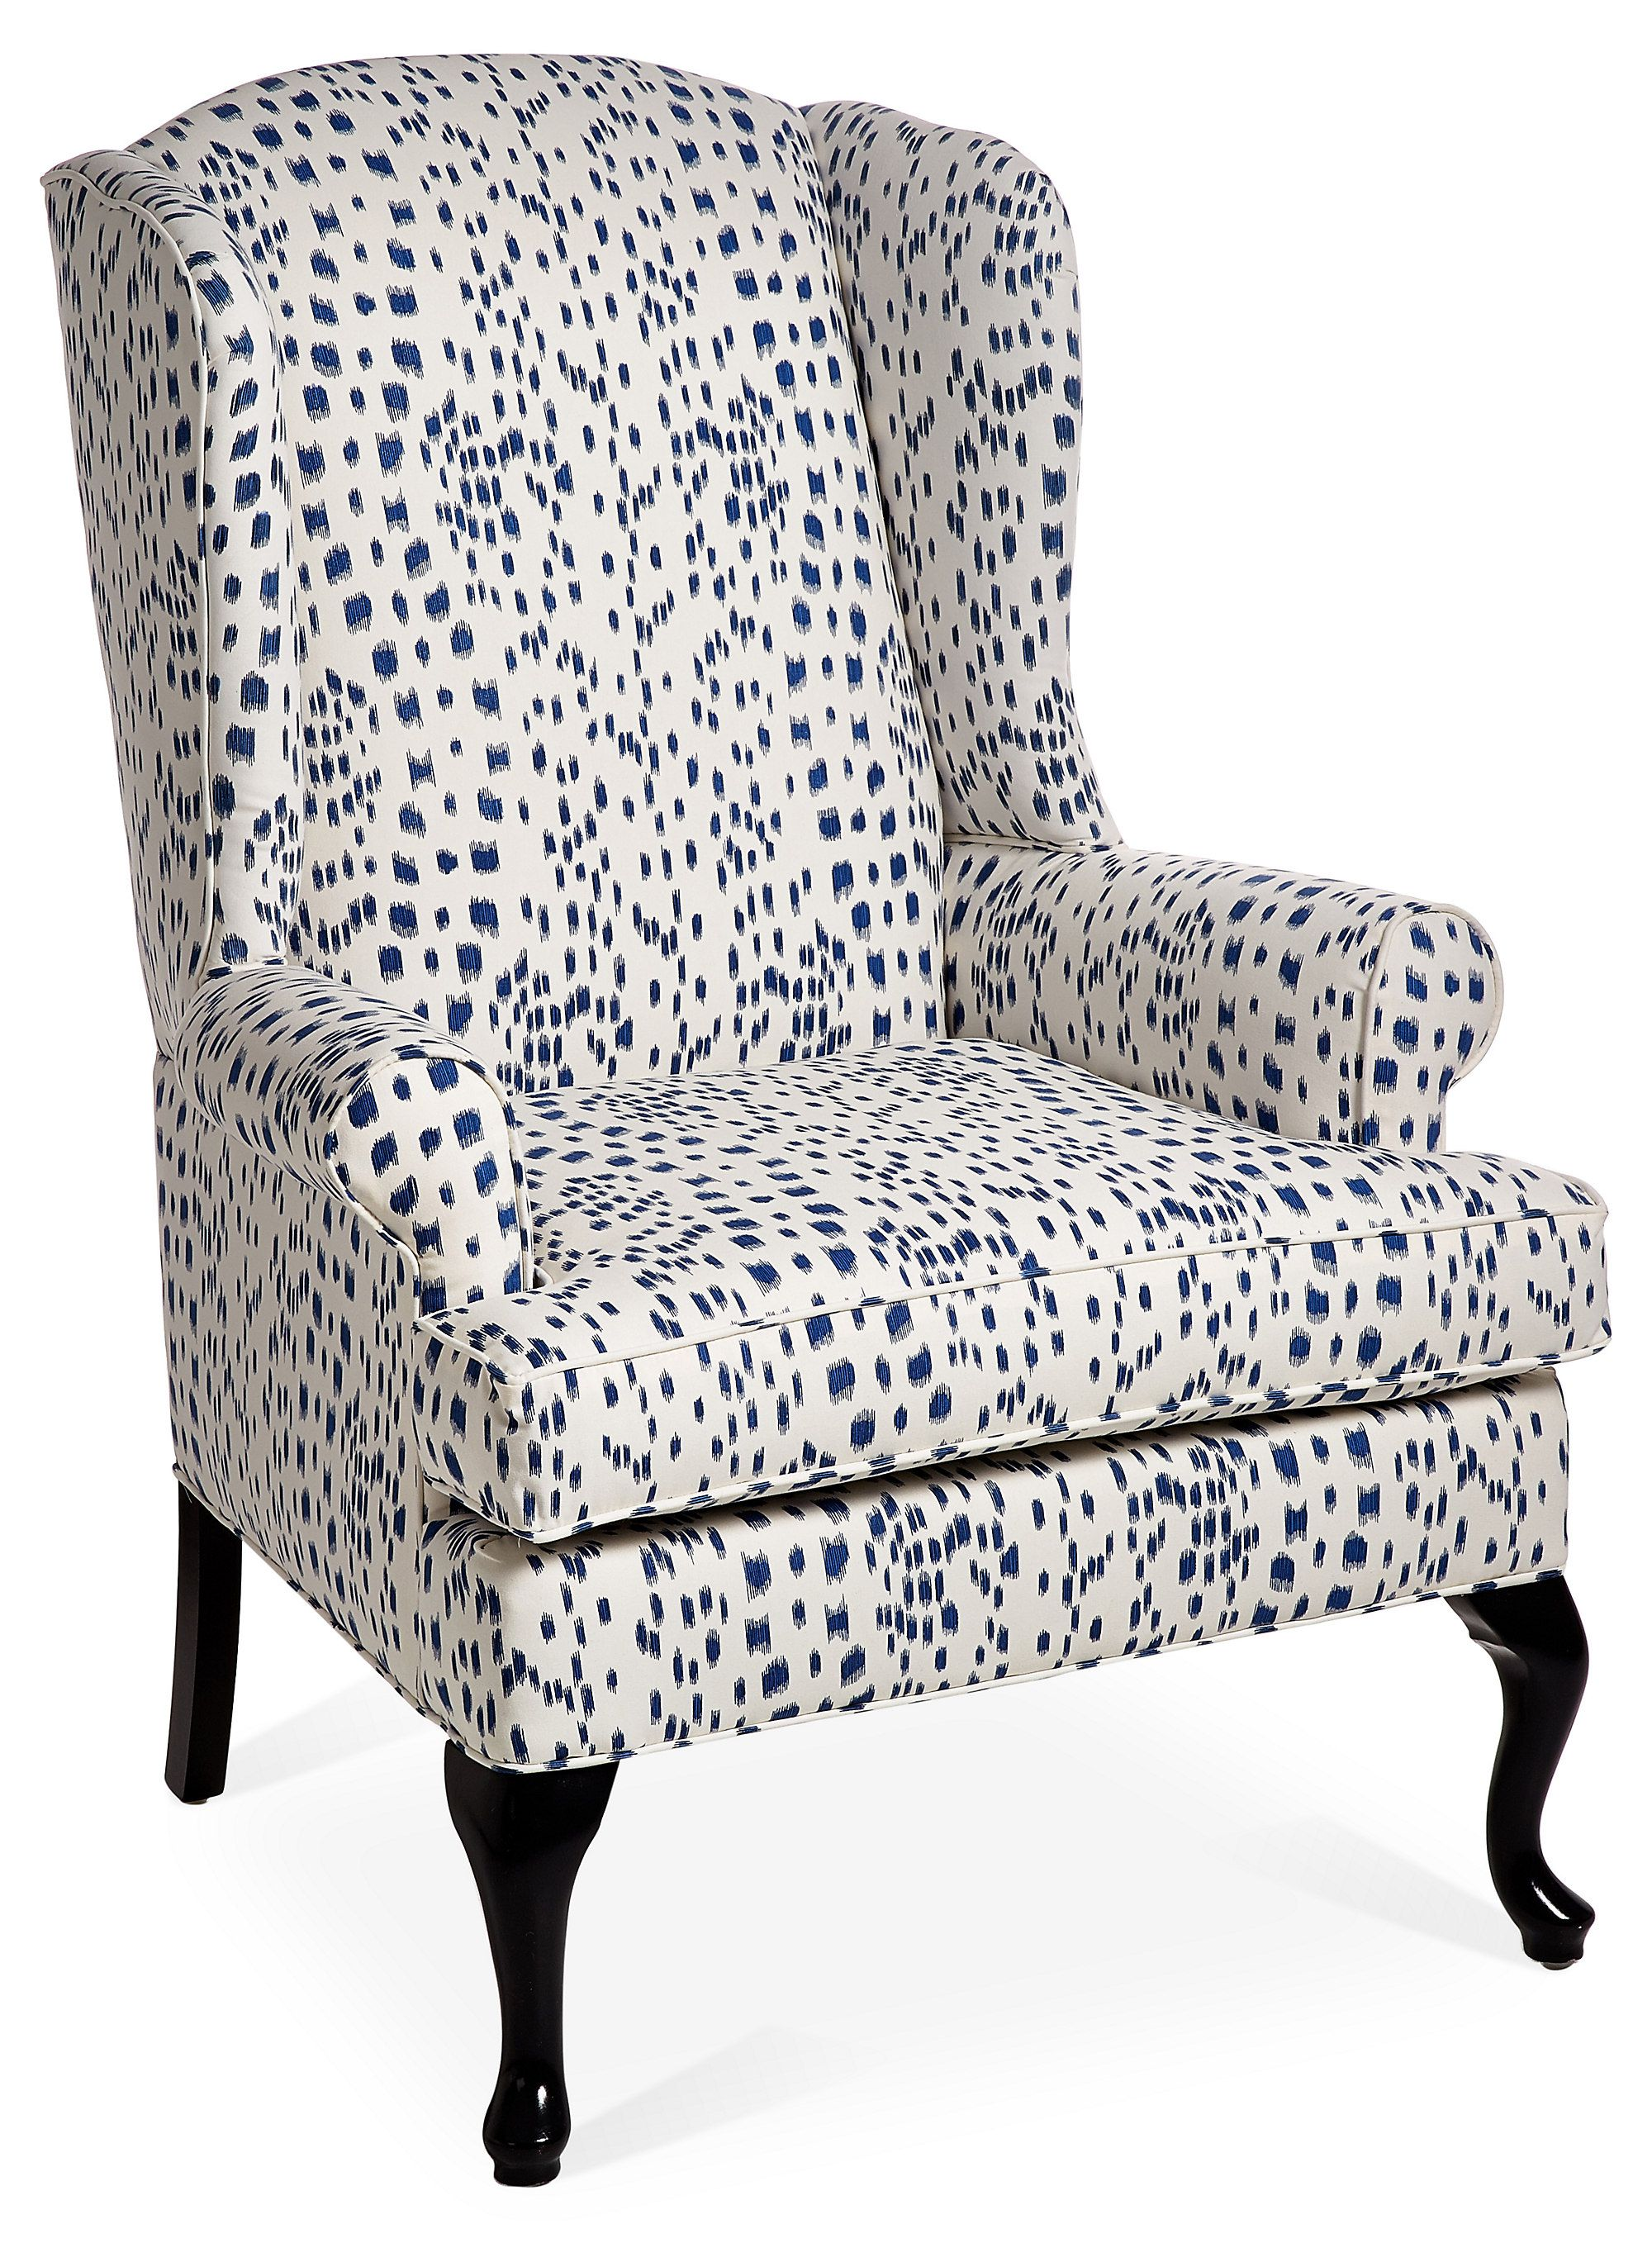 Navy Blue Wingback Chair The Classic Wingback Chair Gets A Modern Update With